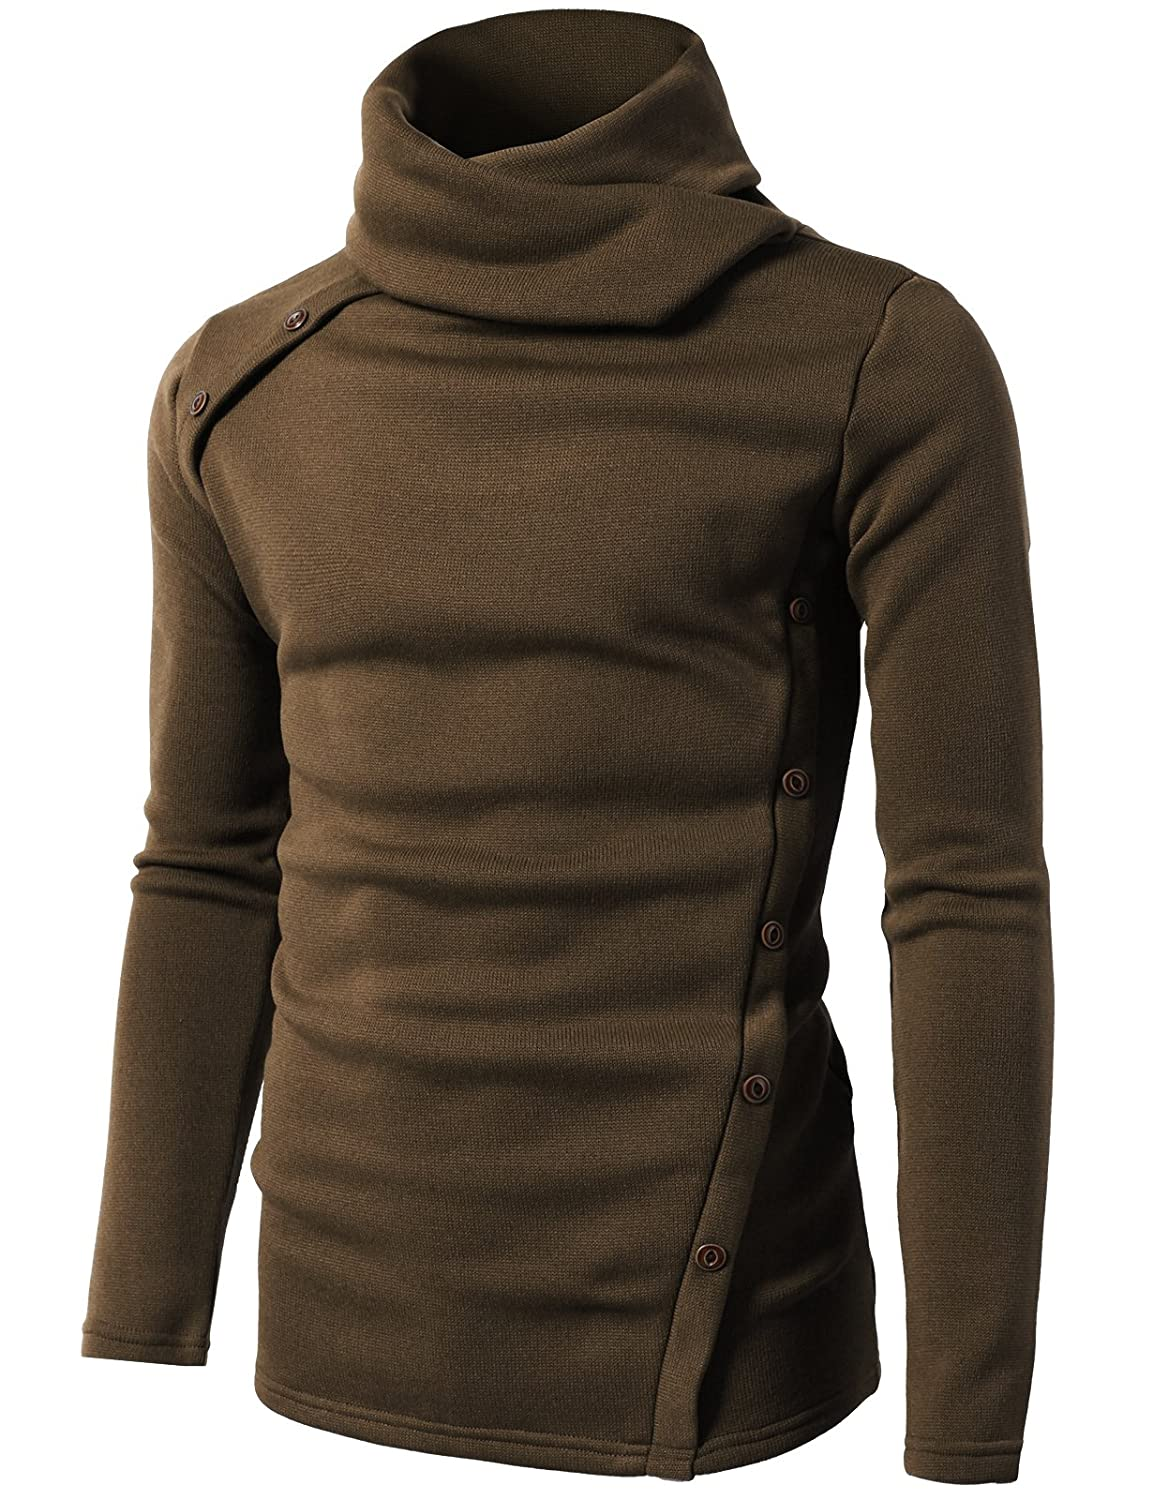 H2H Mens Casual Slim Fit Button Point Knitted Pullover Sweaters #CMTTL065